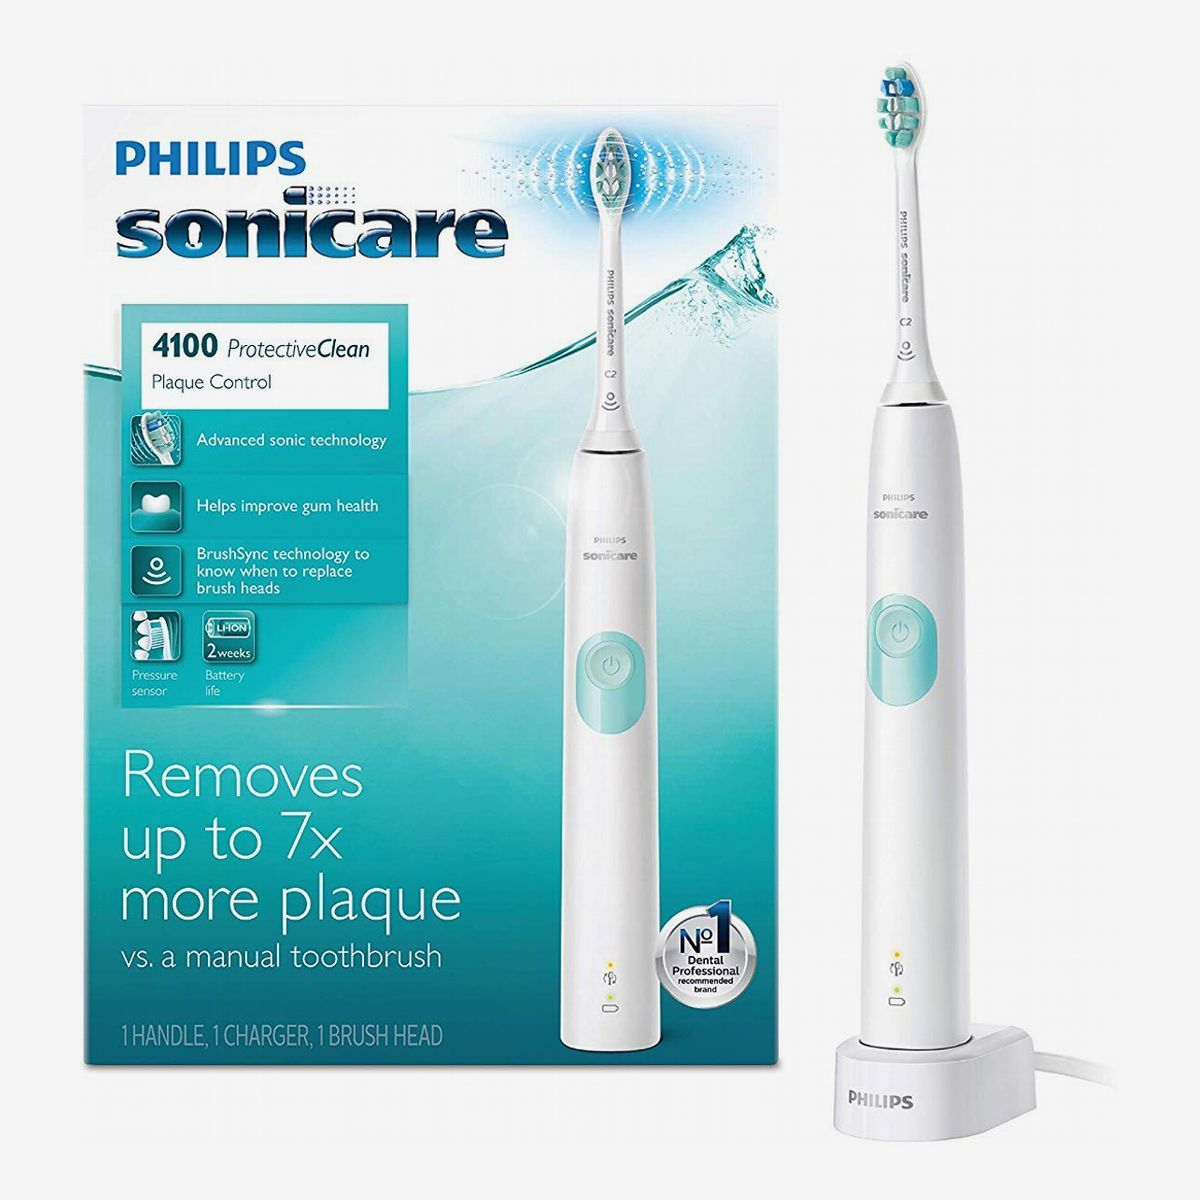 31 Gifts for Every Type of Brother | Rechargeable toothbrush, Brushing  teeth, Sonicare